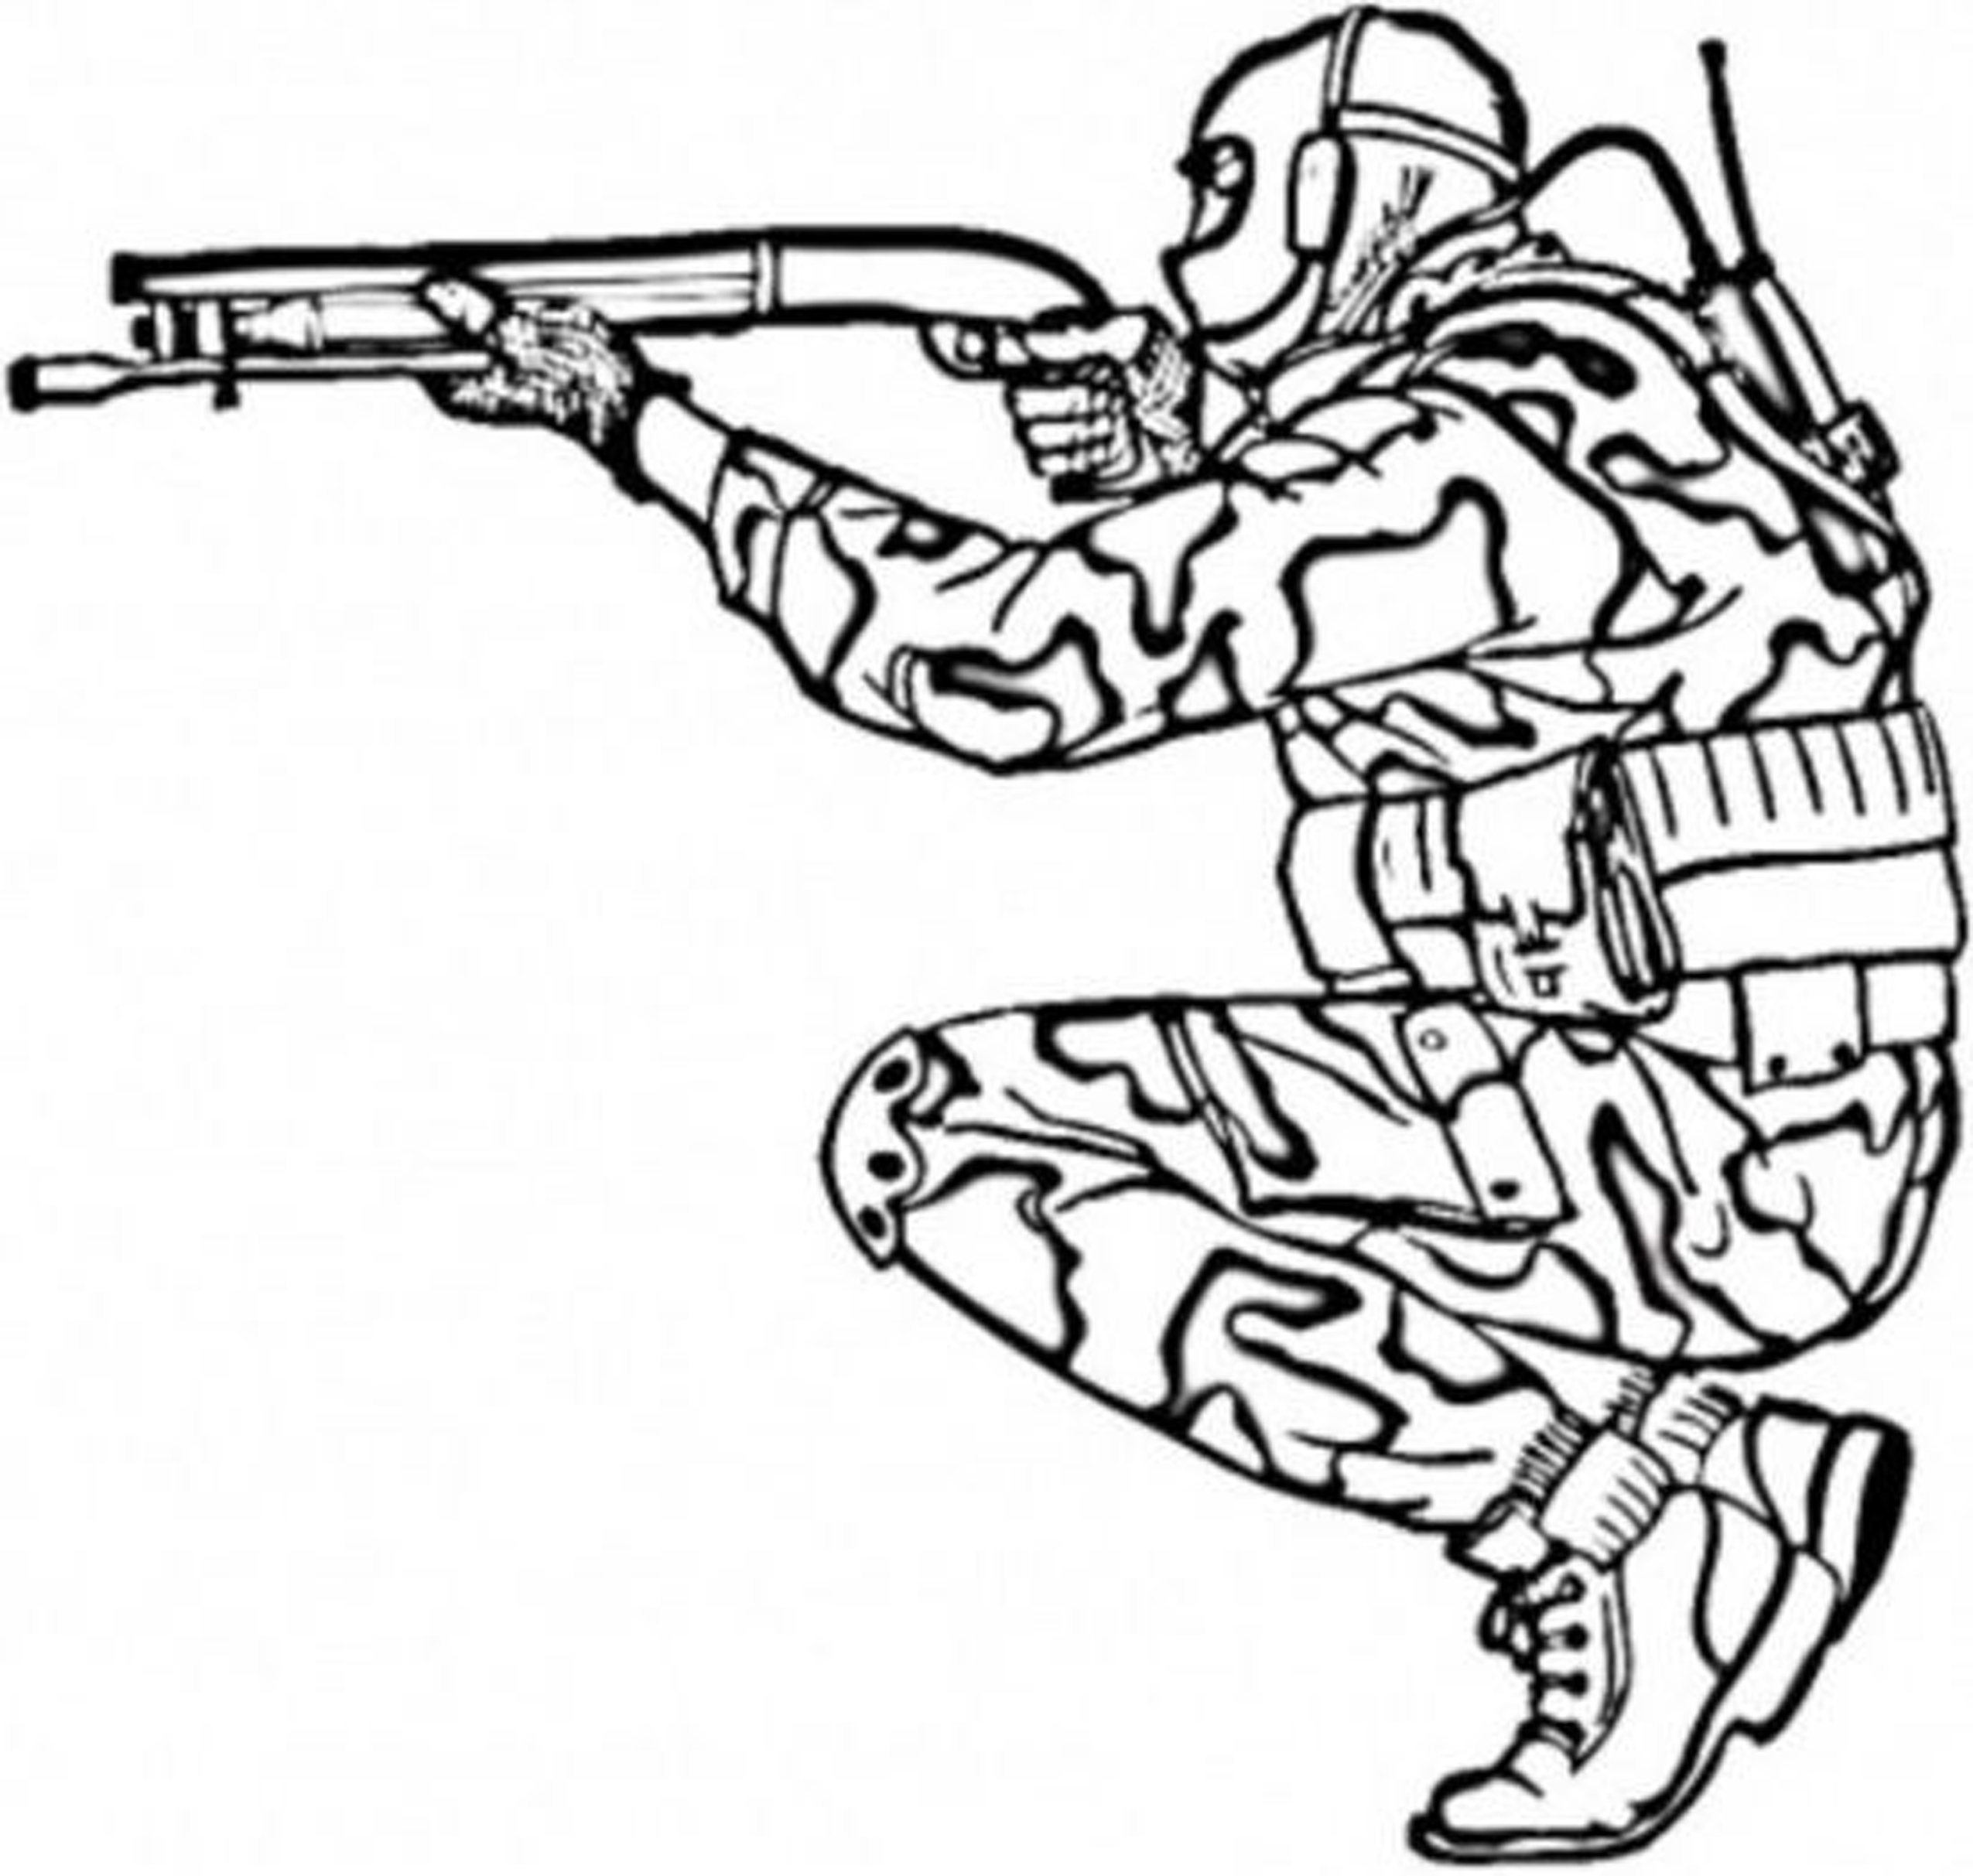 2550x2425 Coloring Pages Excellent Army Coloring Pages Soldier Shooting